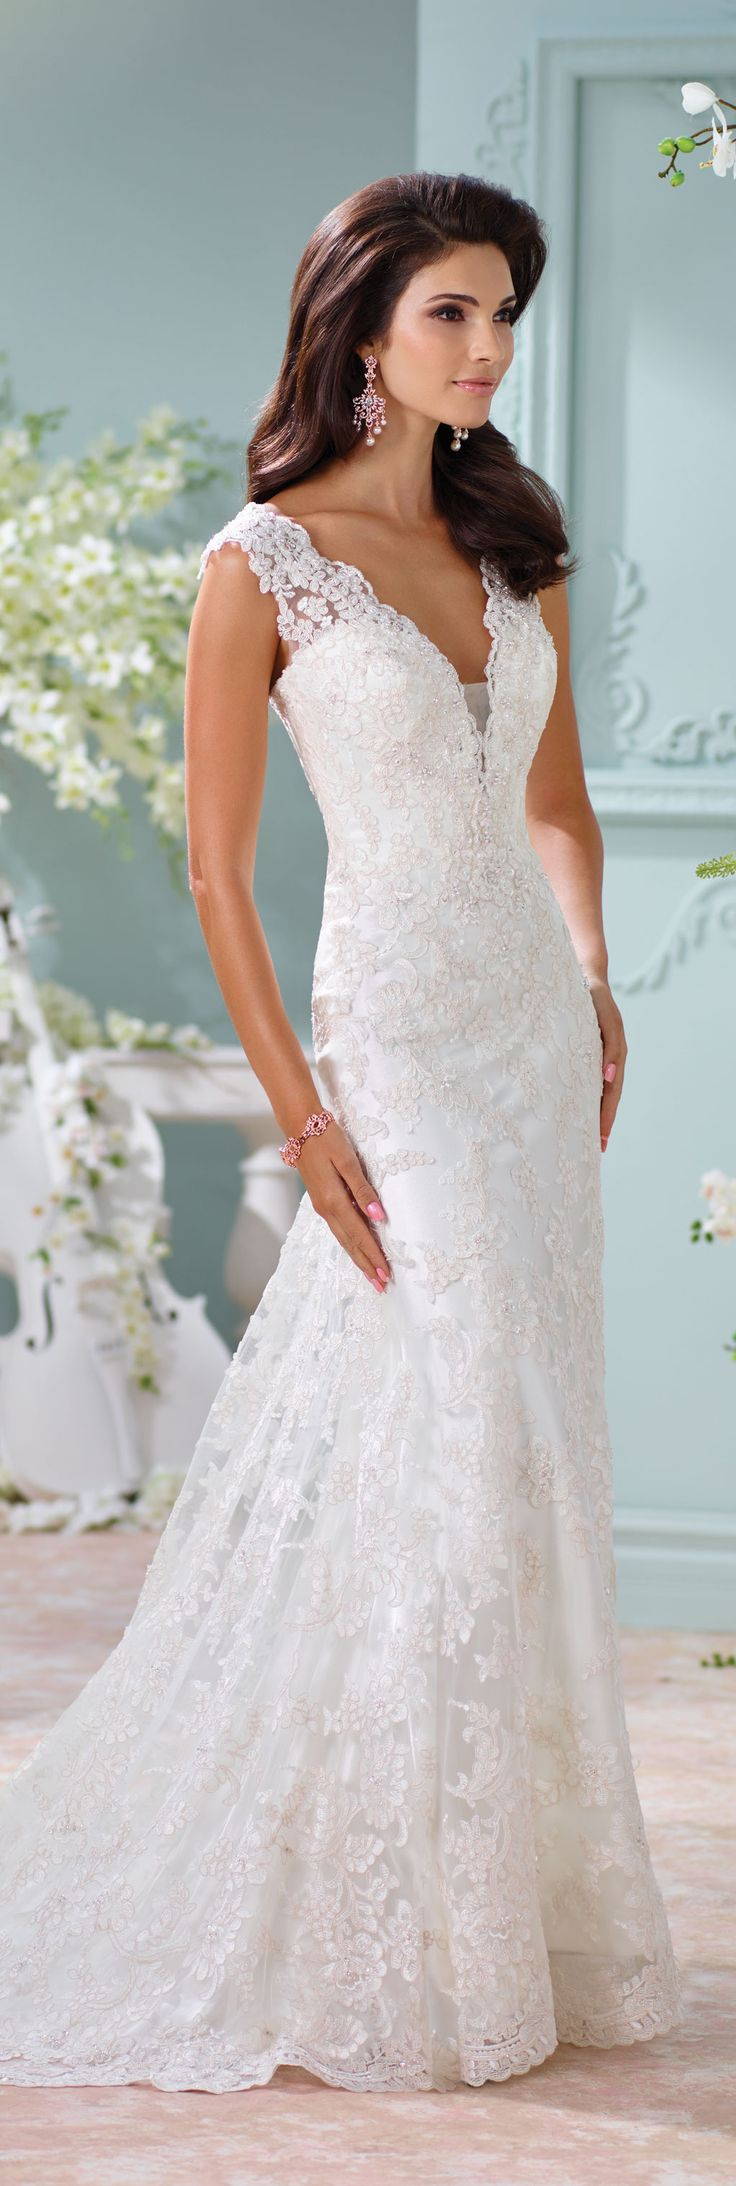 The David Tutera for Mon Cheri Spring 2016 Wedding Gown Collection - Style No. 116204 Dayton #laceweddingdresses